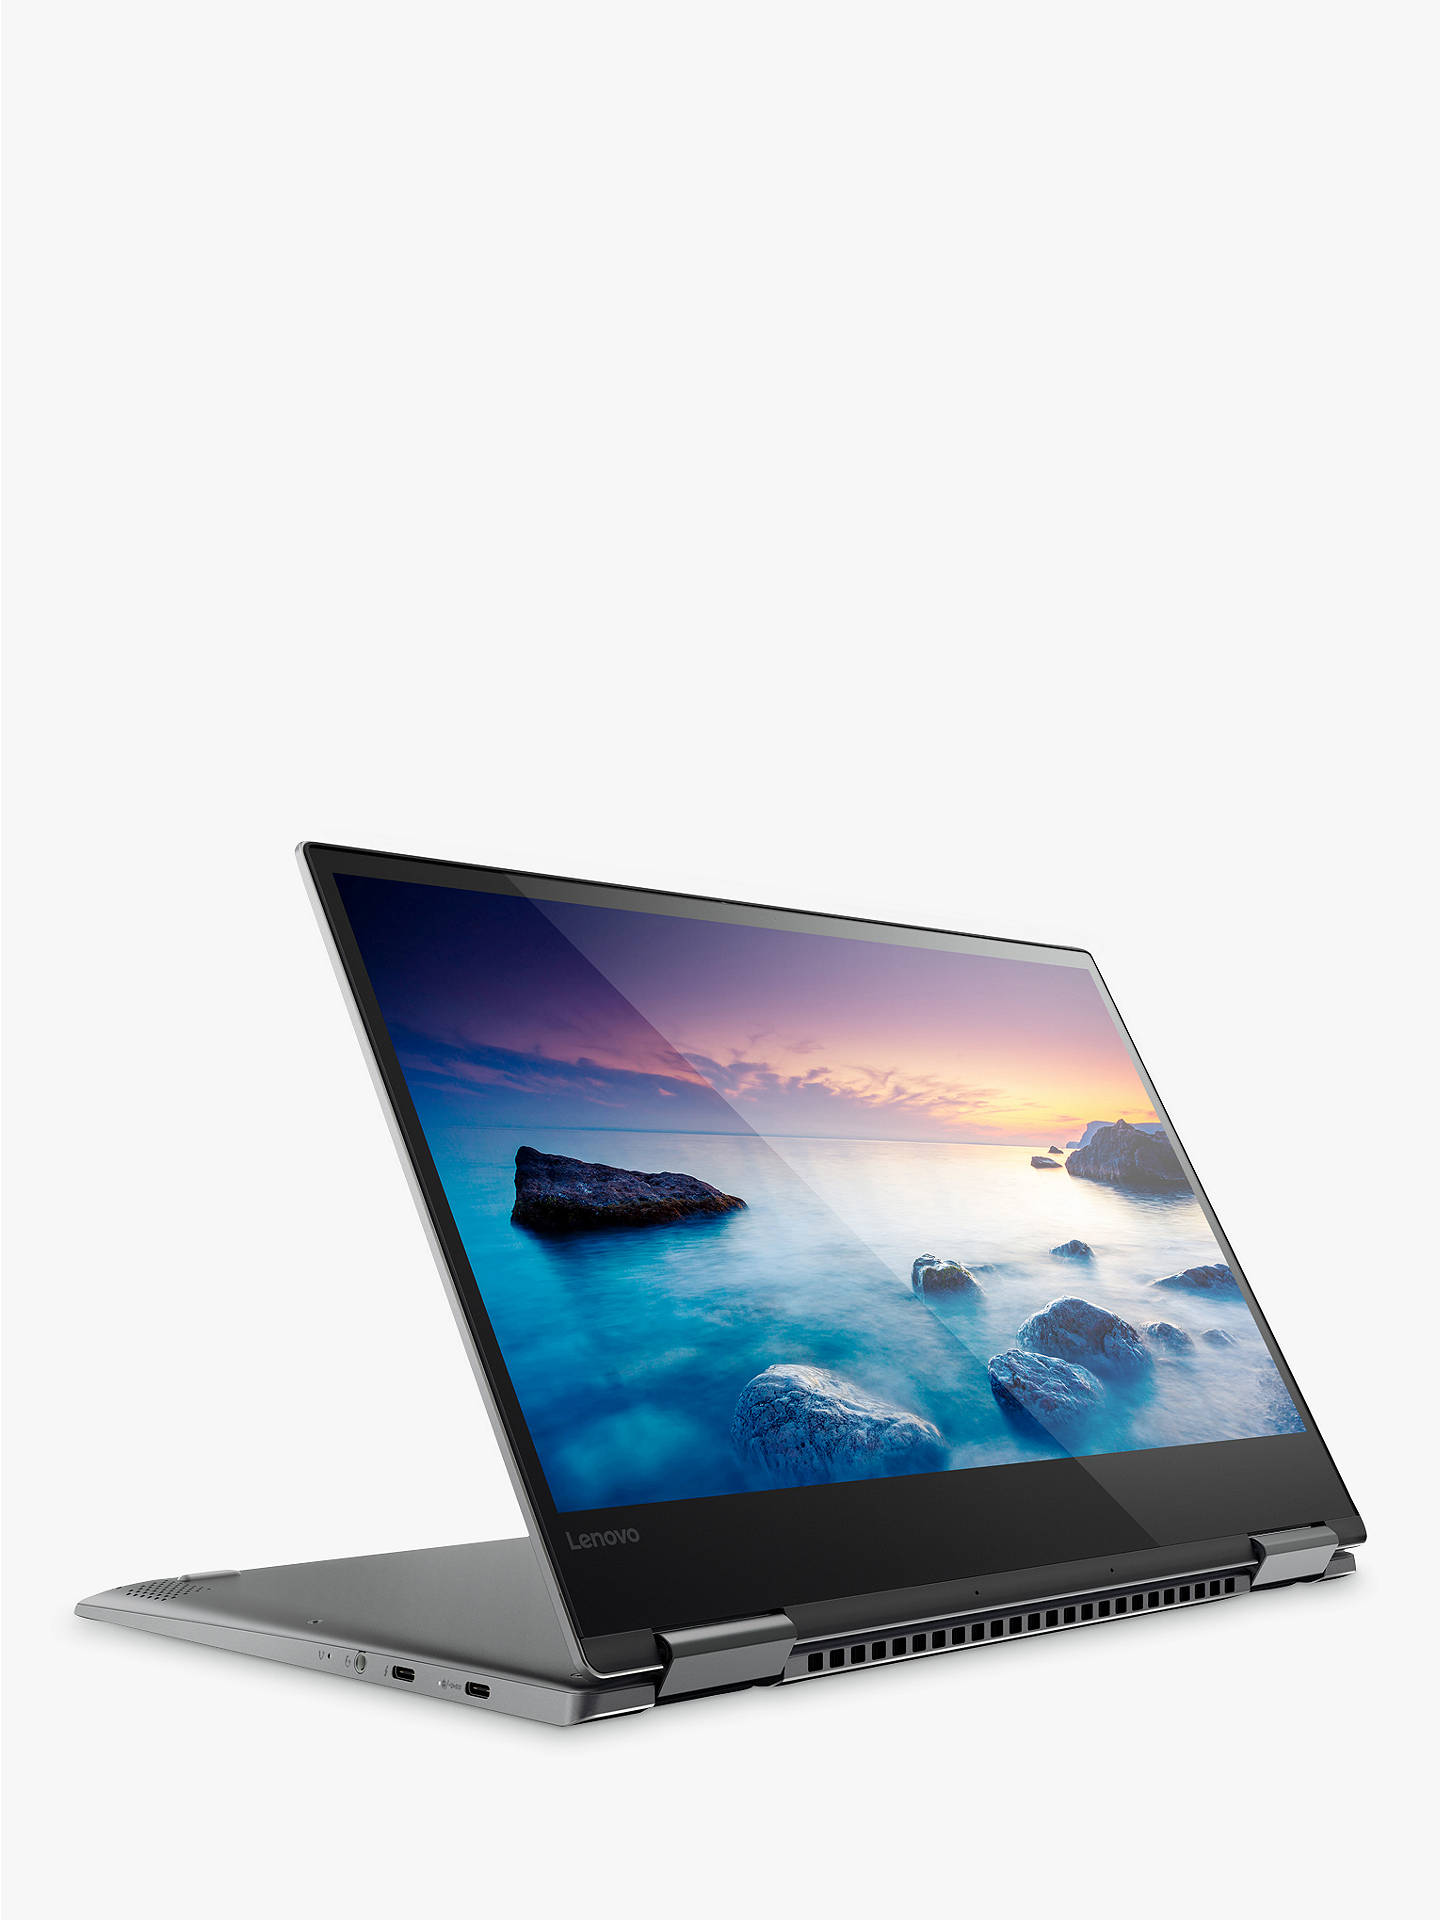 Lenovo Yoga 720 Convertible Laptop With Active Pen Intel Core I7 Science Notebooking Electrical Circuit Boxes And Online Game Love Buylenovo 8gb Ram